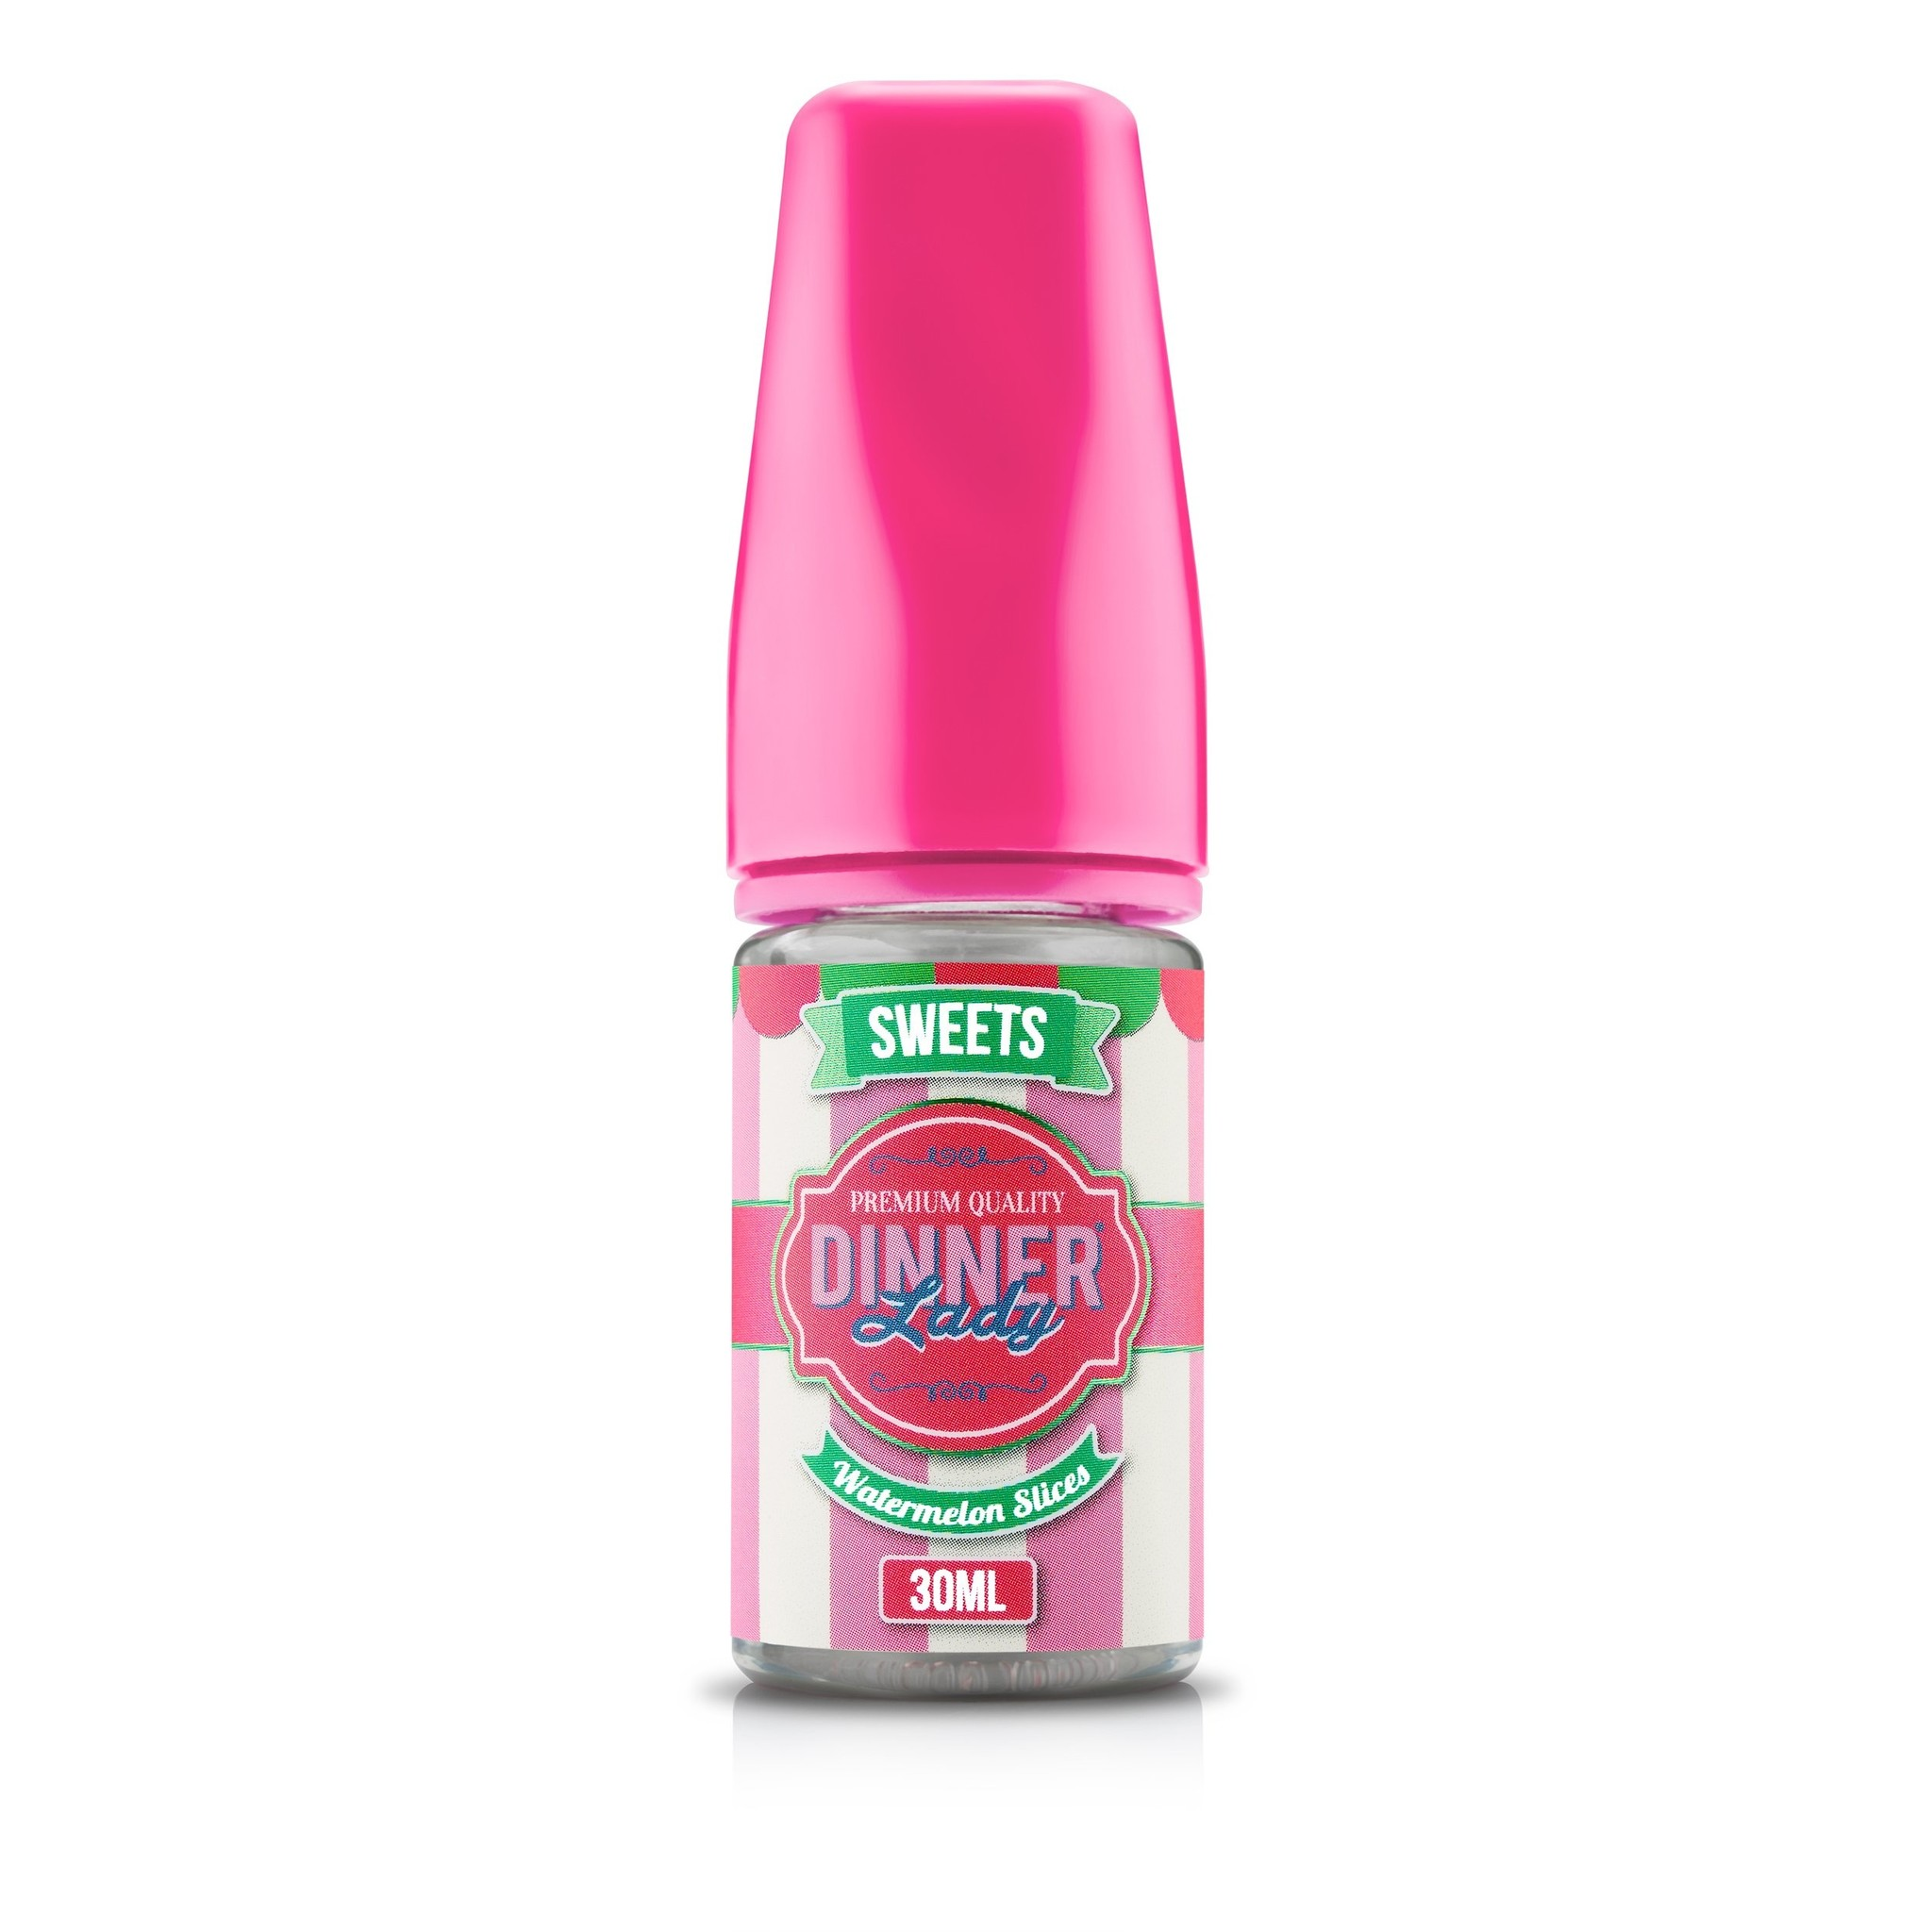 Dinner Lady Dinner Lady - Watermelon Slices 30ml Flavour Concentrate